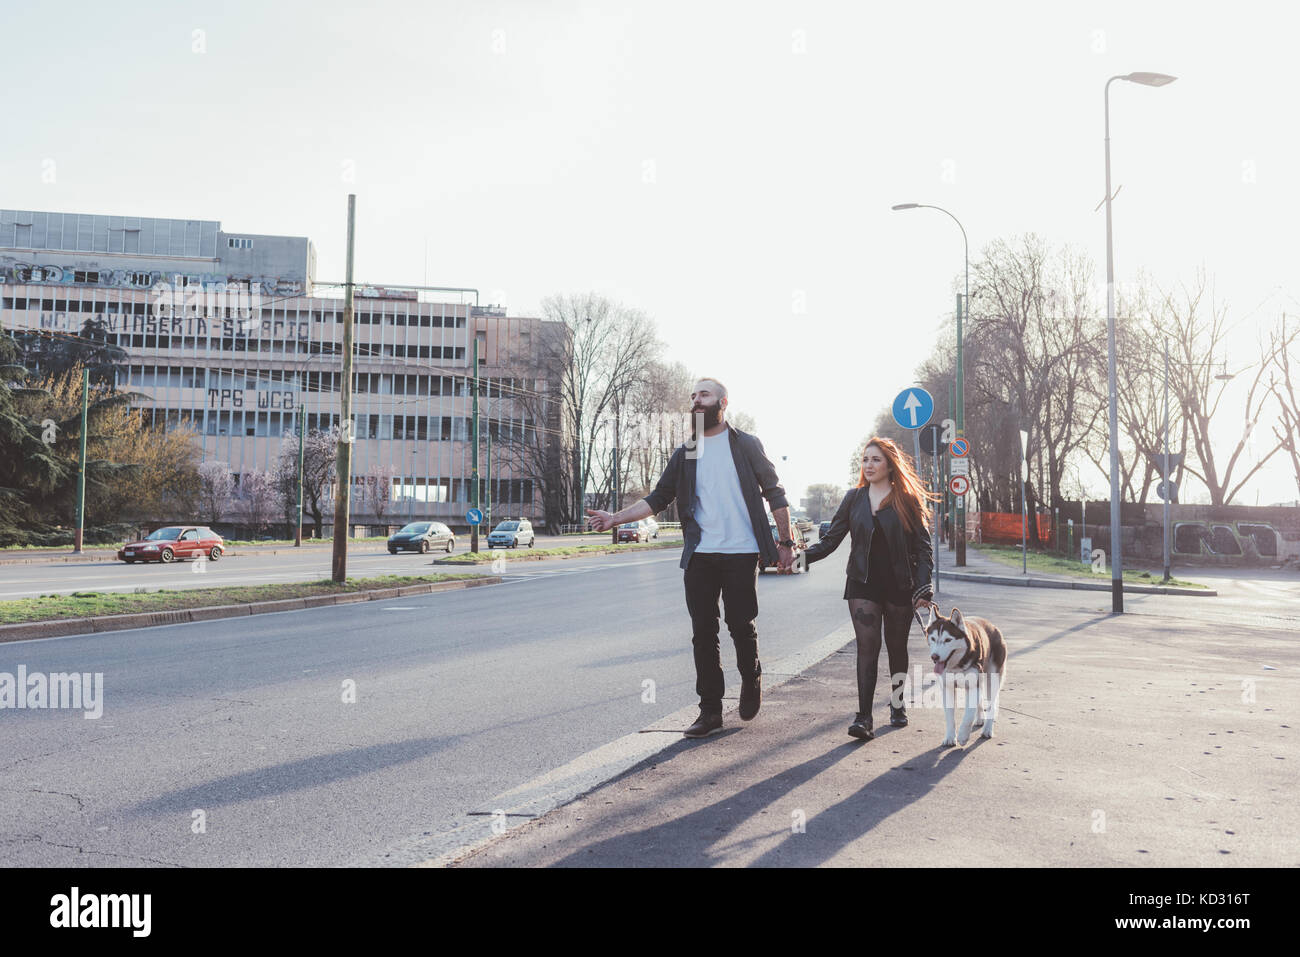 Couple walking with dog - Stock Image